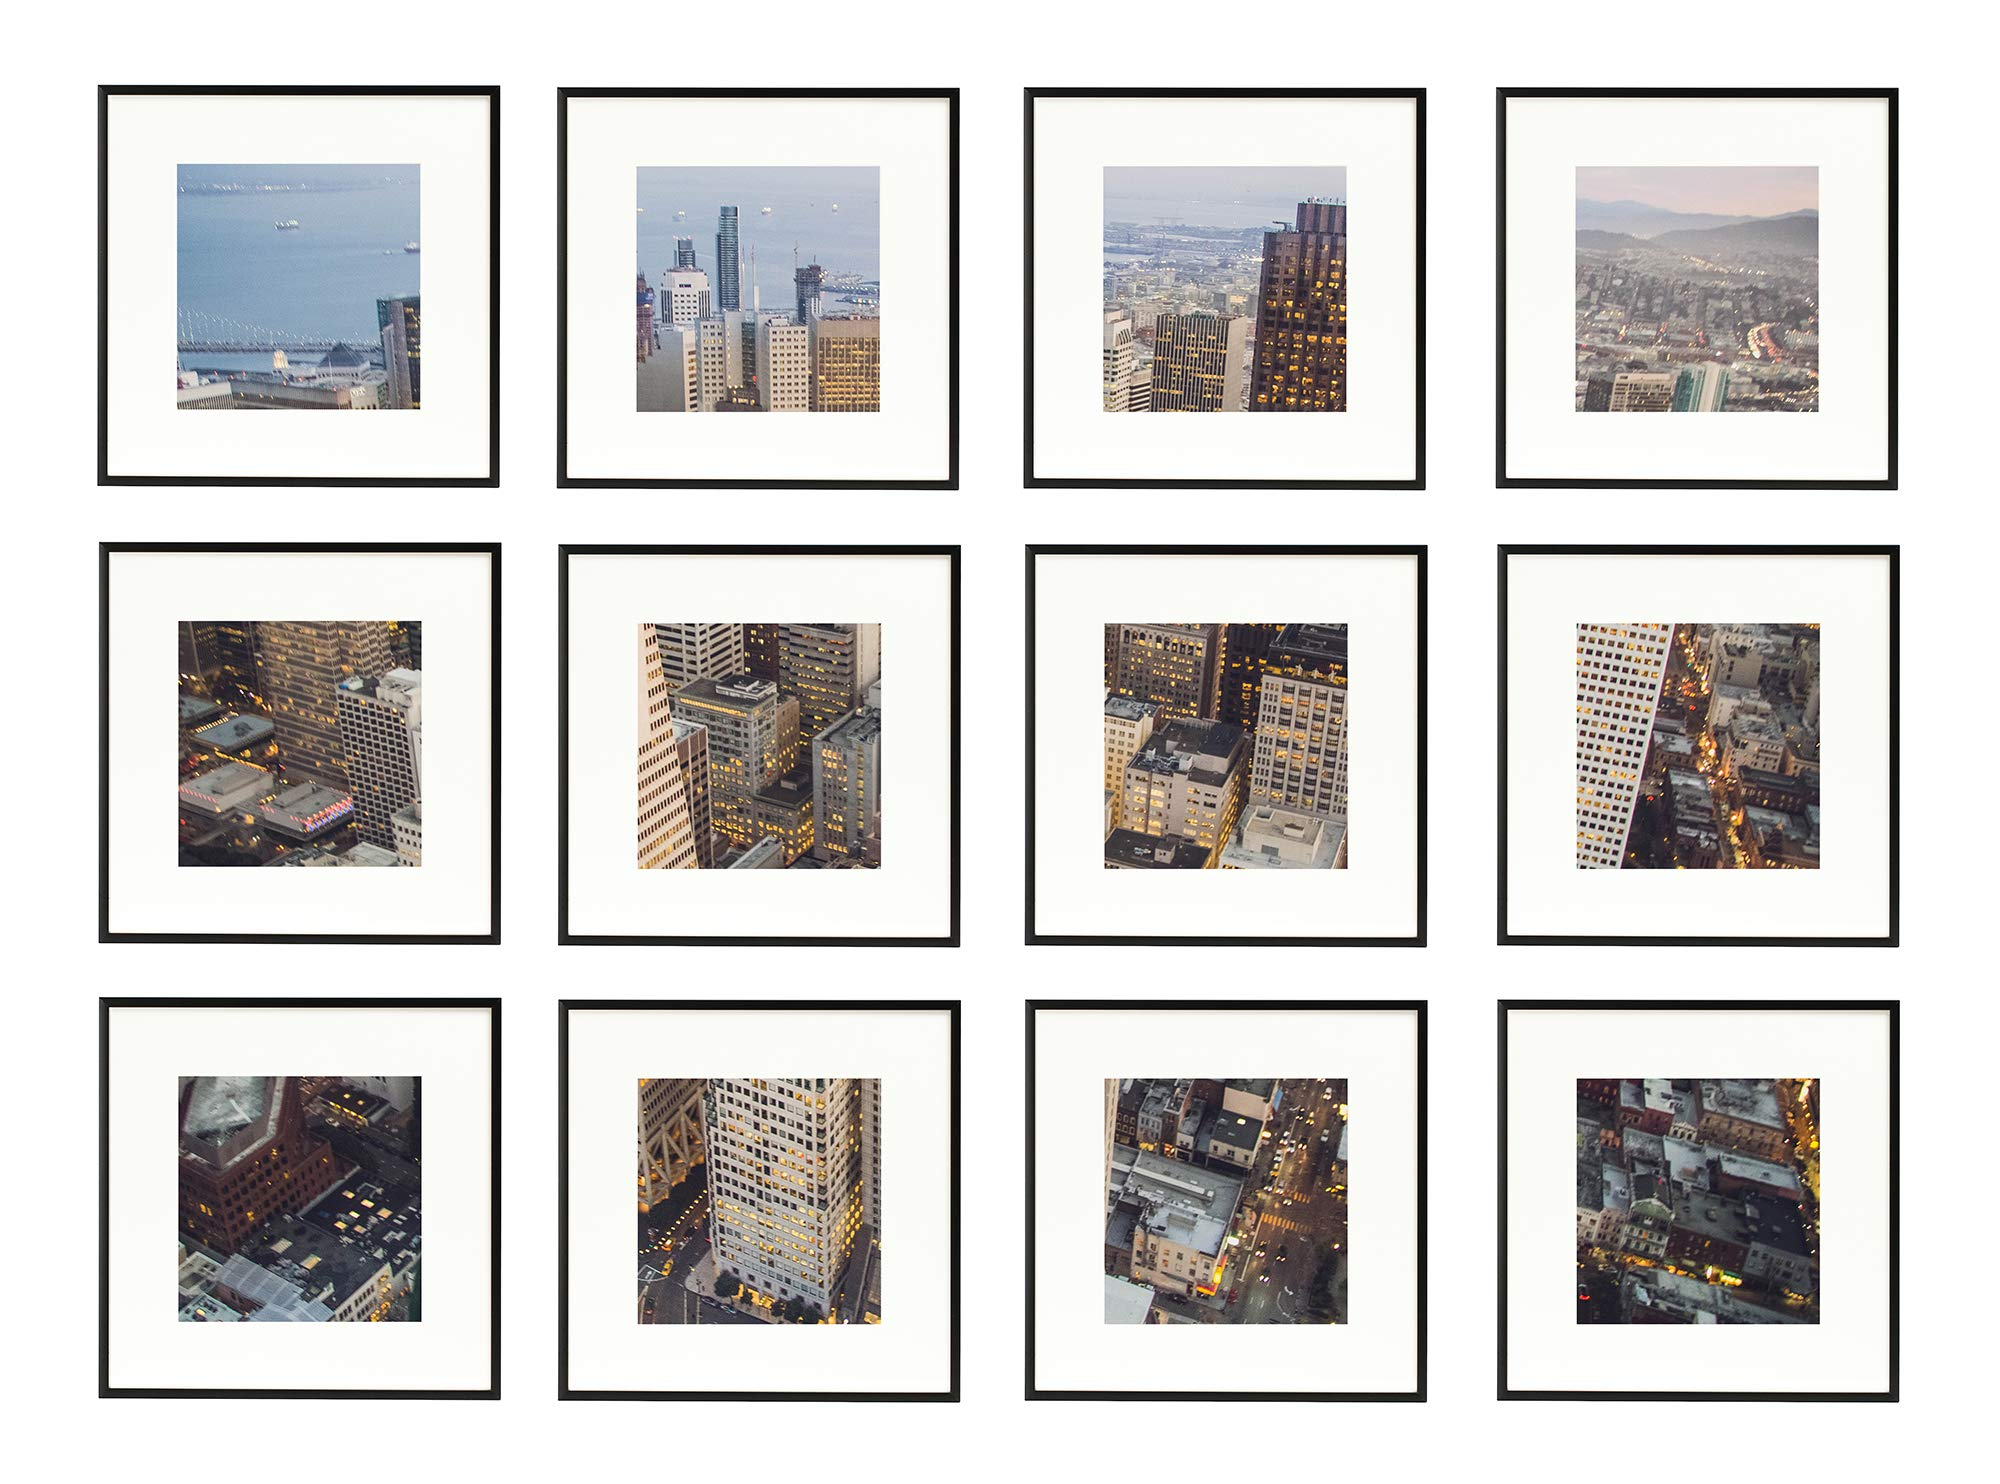 Frametory, Set of 12, 12x12 Black Aluminum Frame - Includes Ivory Mat for 8x8 Picture - Gallery Wall Display - Sawtooth Hanger, Swivel Tabs - Collage Set for Landscapes, Family Photos, Pets by Frametory